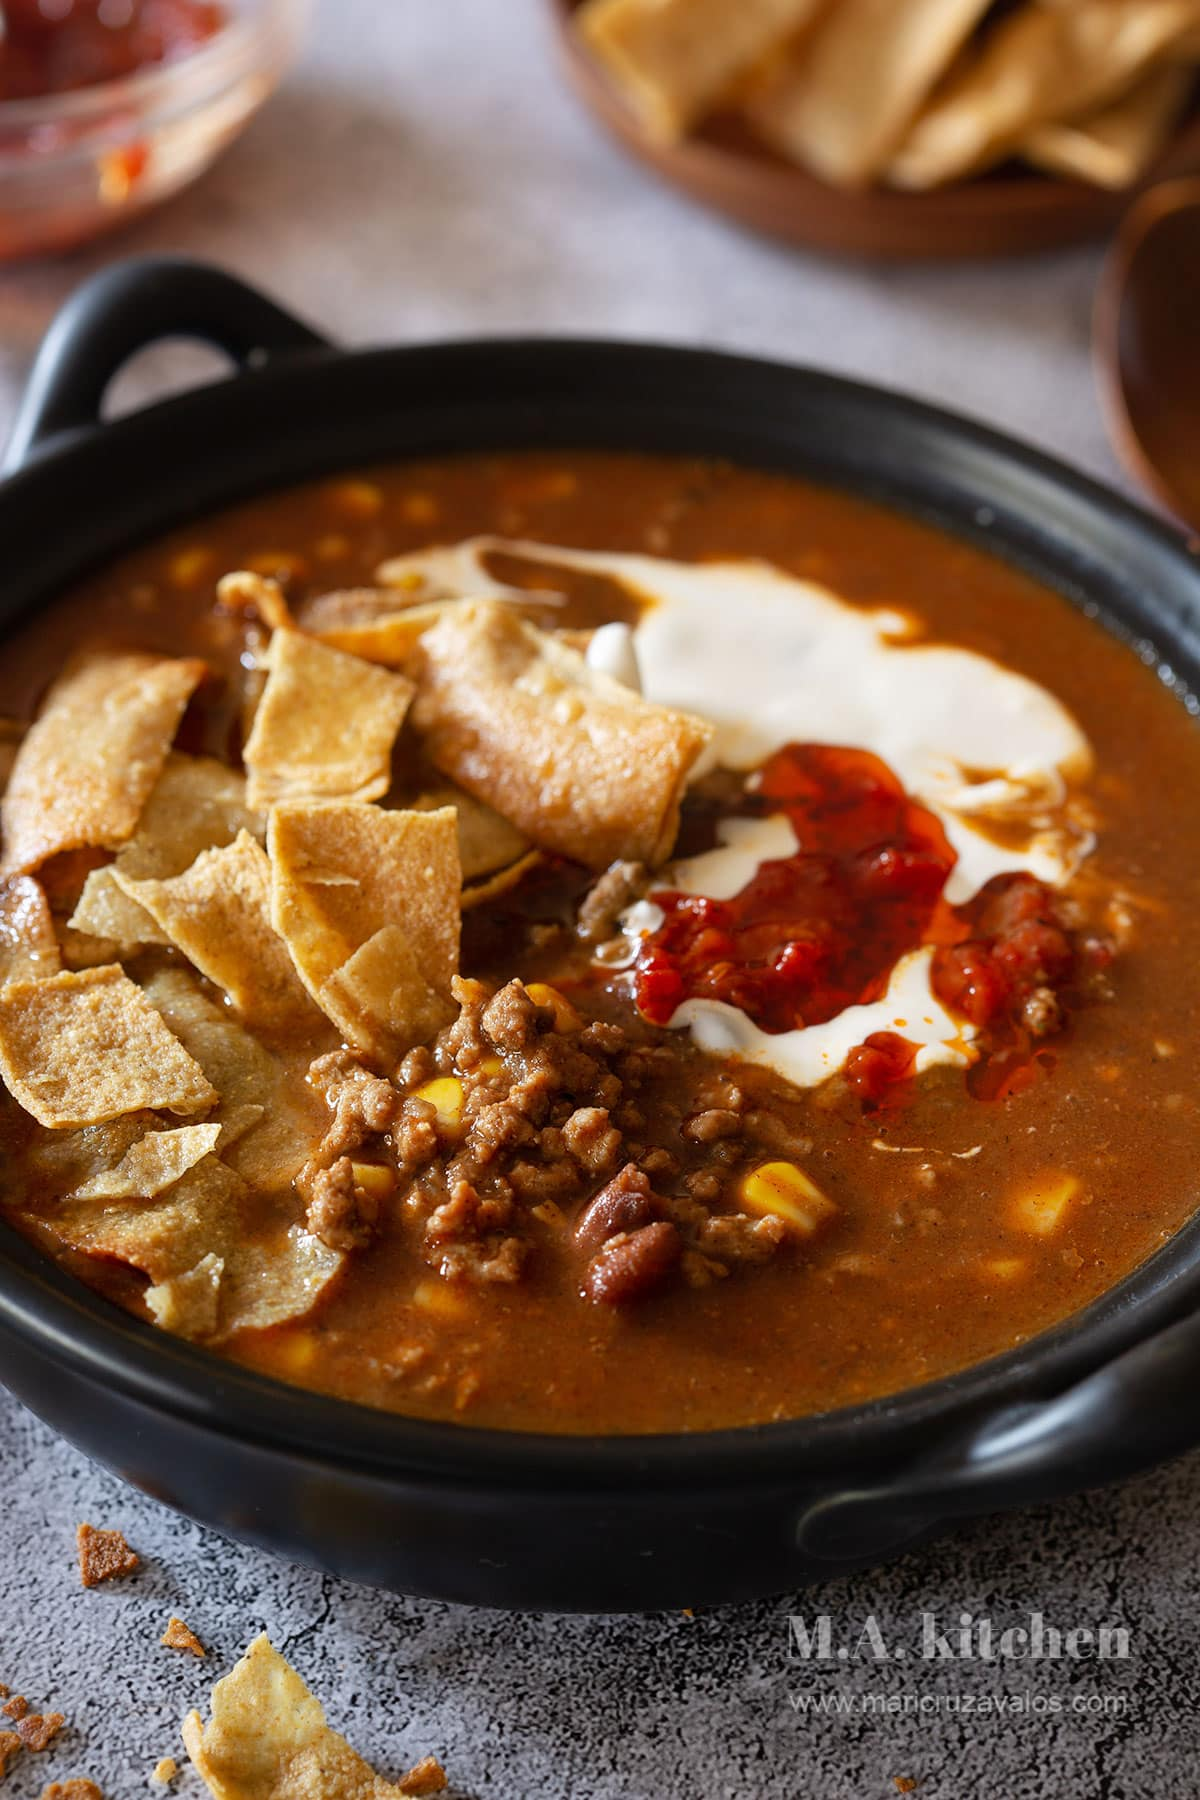 Beef enchilada soup served with tortilla chips, cream and chili oil sauce.